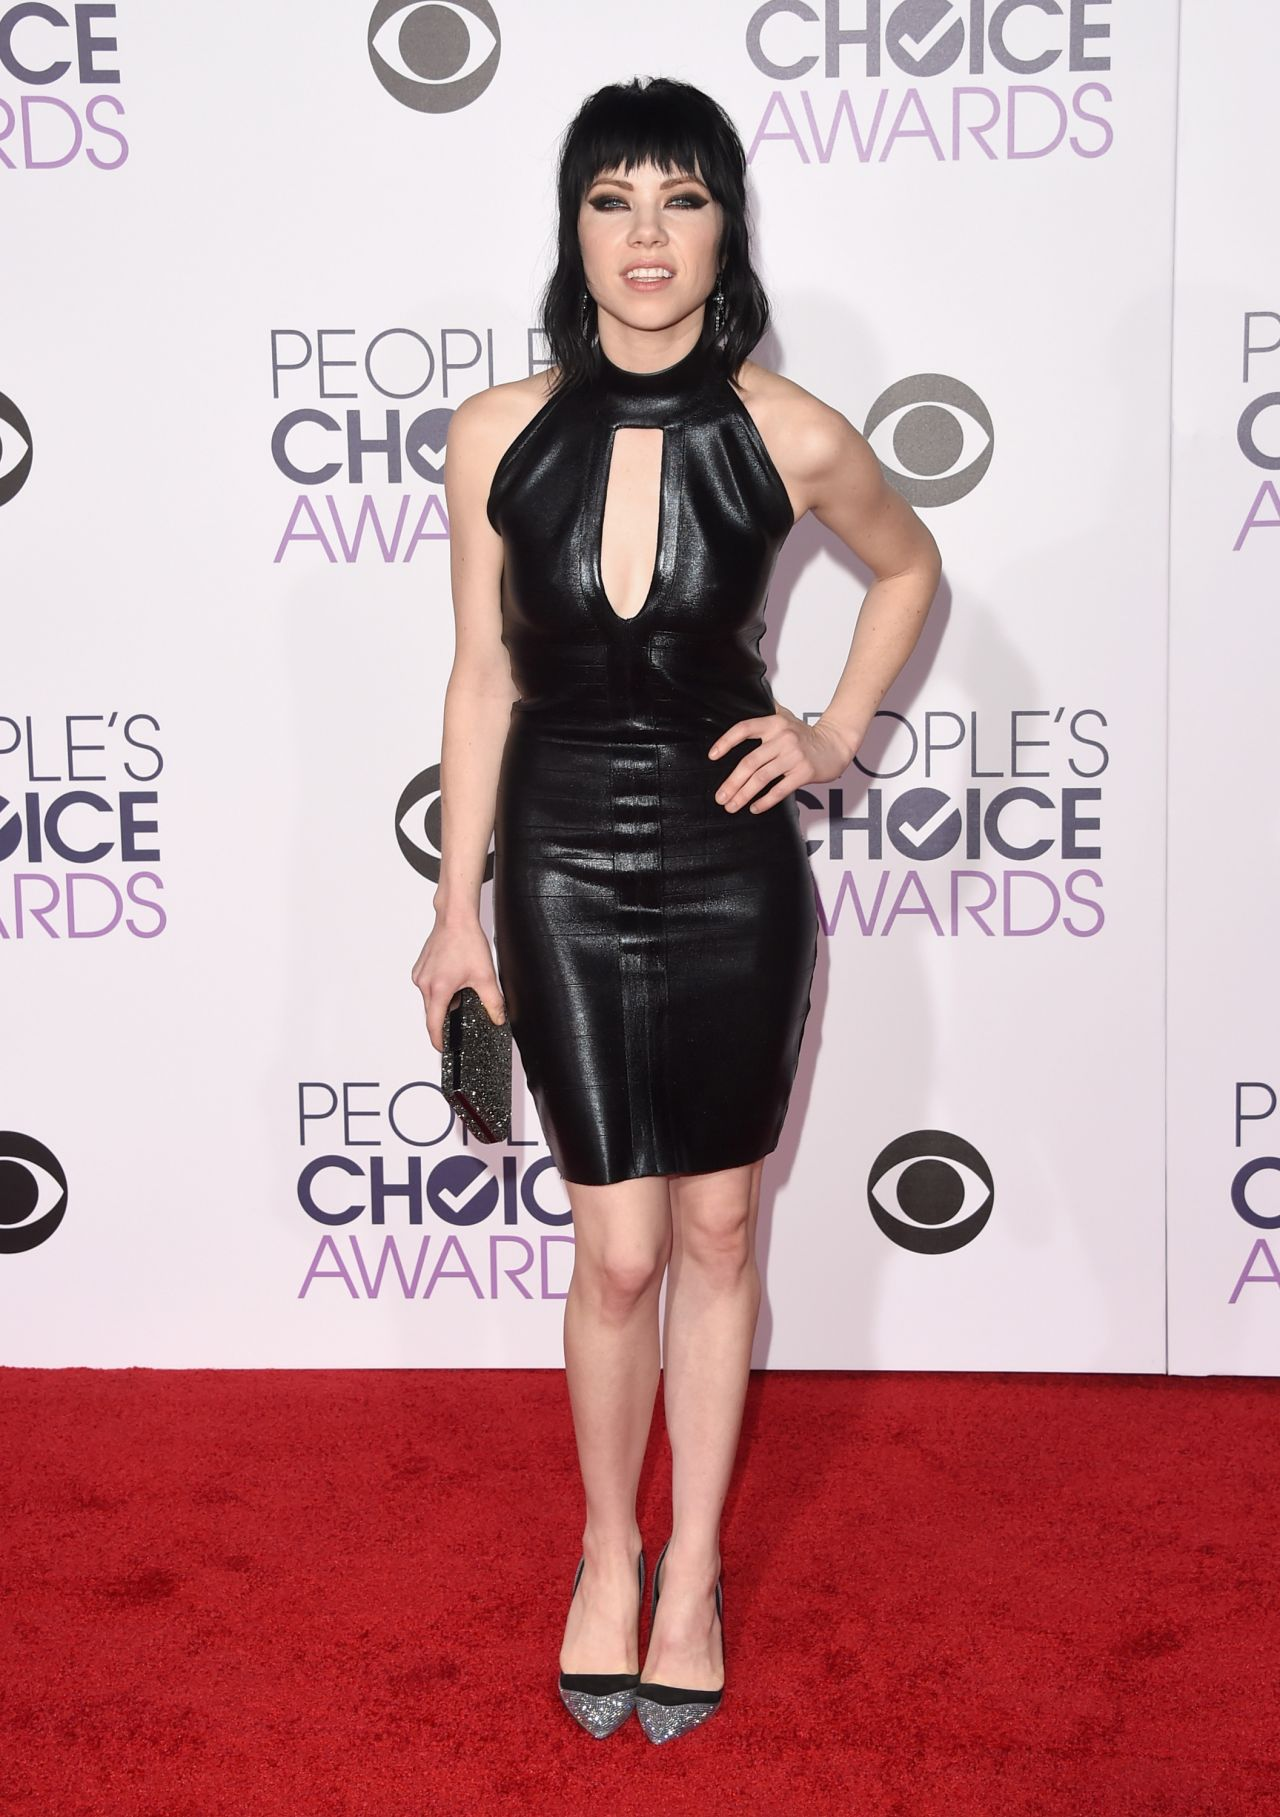 2016 Peoples Choice Awards Red Carpet Fashionsizzle